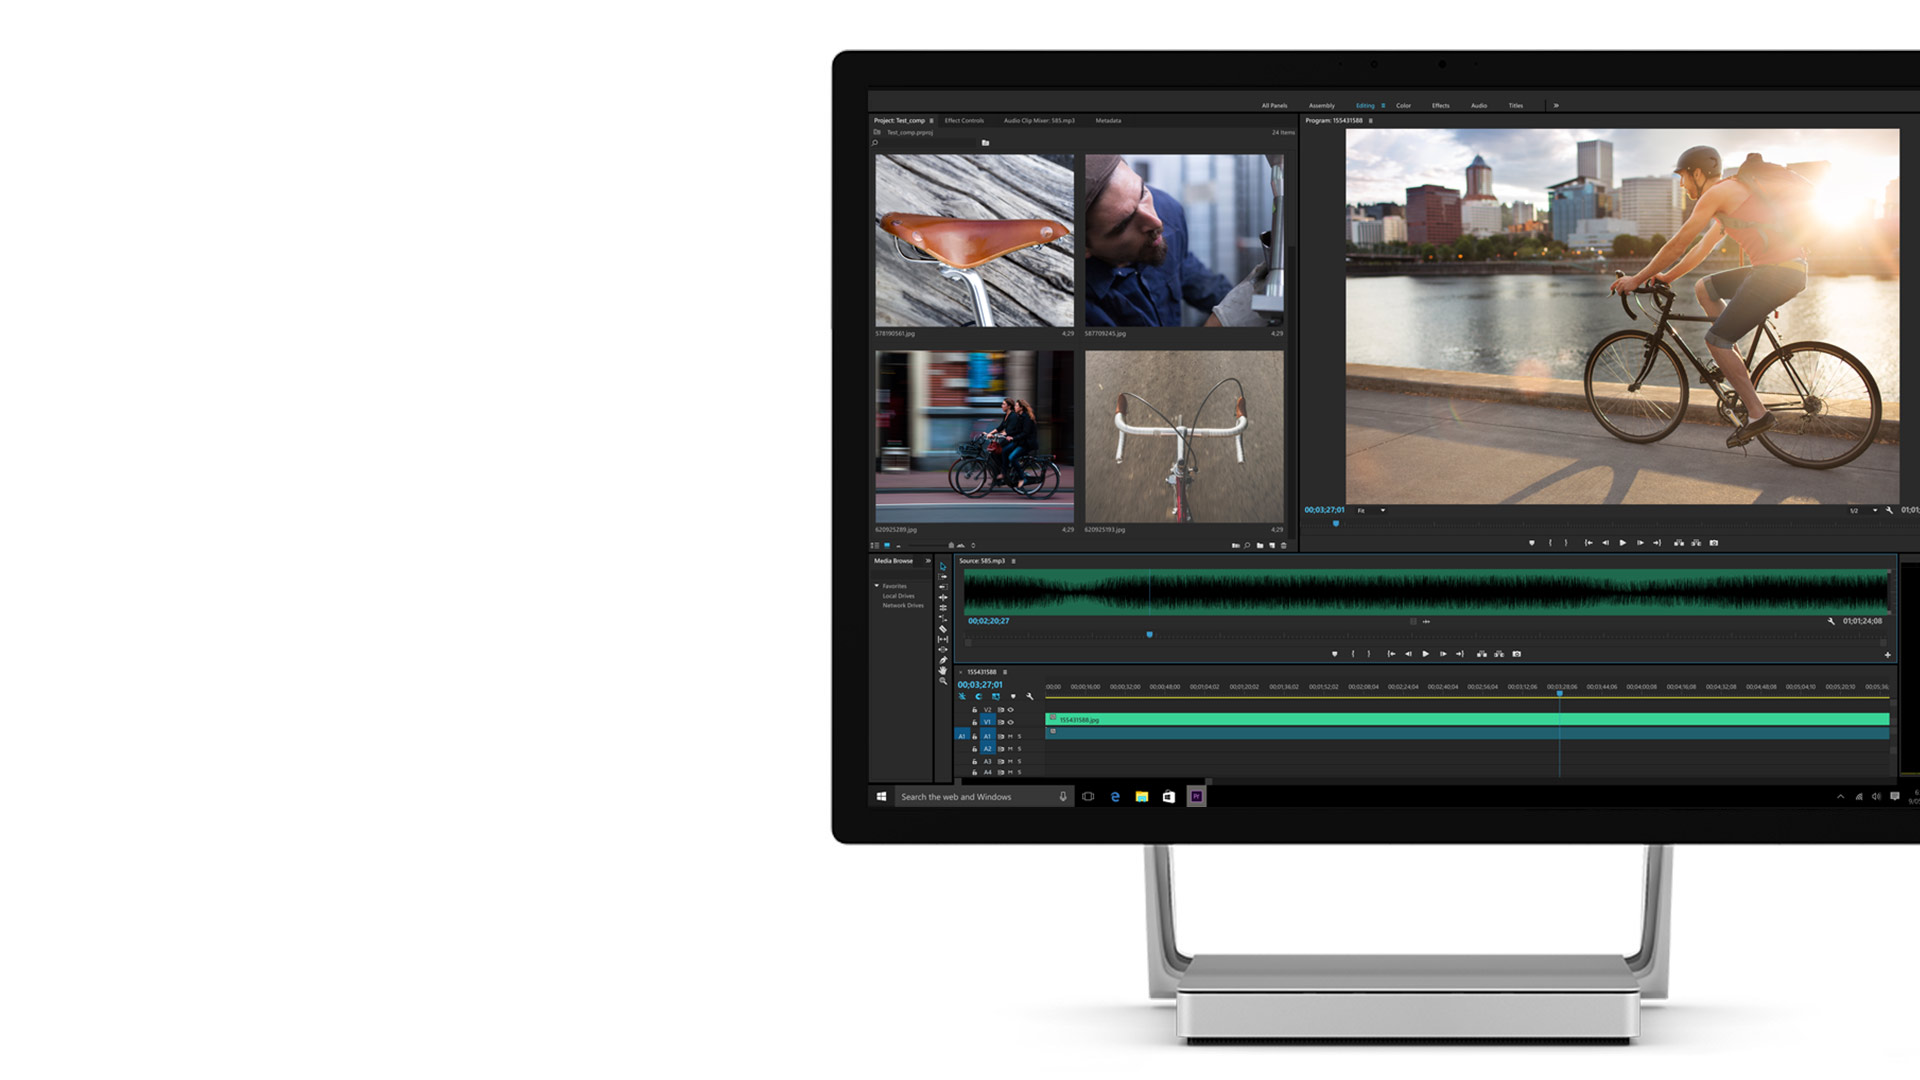 Adobe Premier open on the Surface Studio display